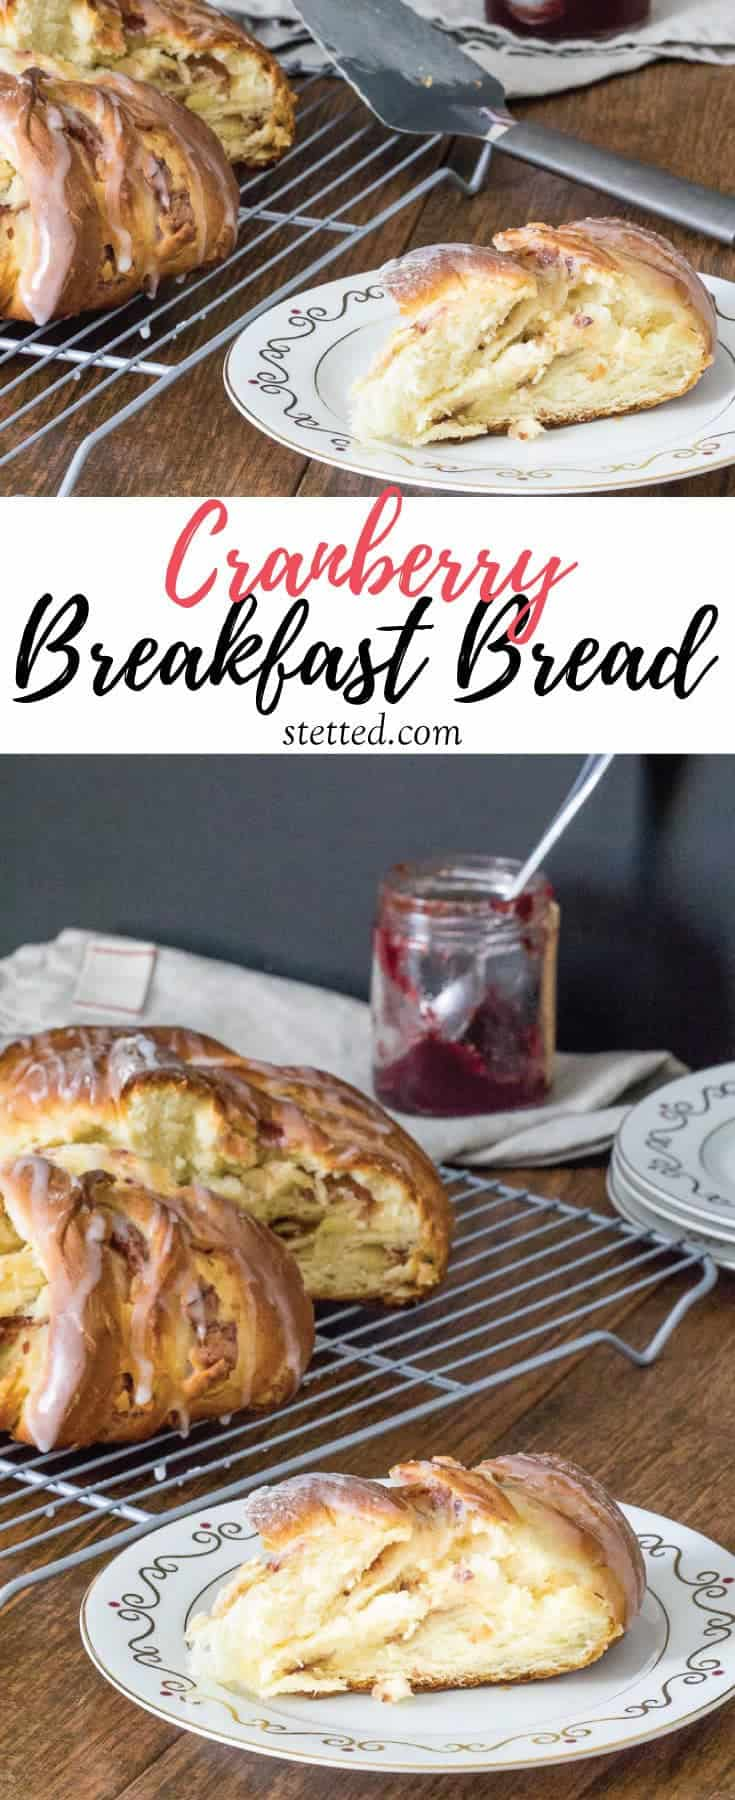 Cranberry breakfast bread uses leftover cranberry sauce for a sweet filling. This centerpiece bread is soft, buttery, and nutty.